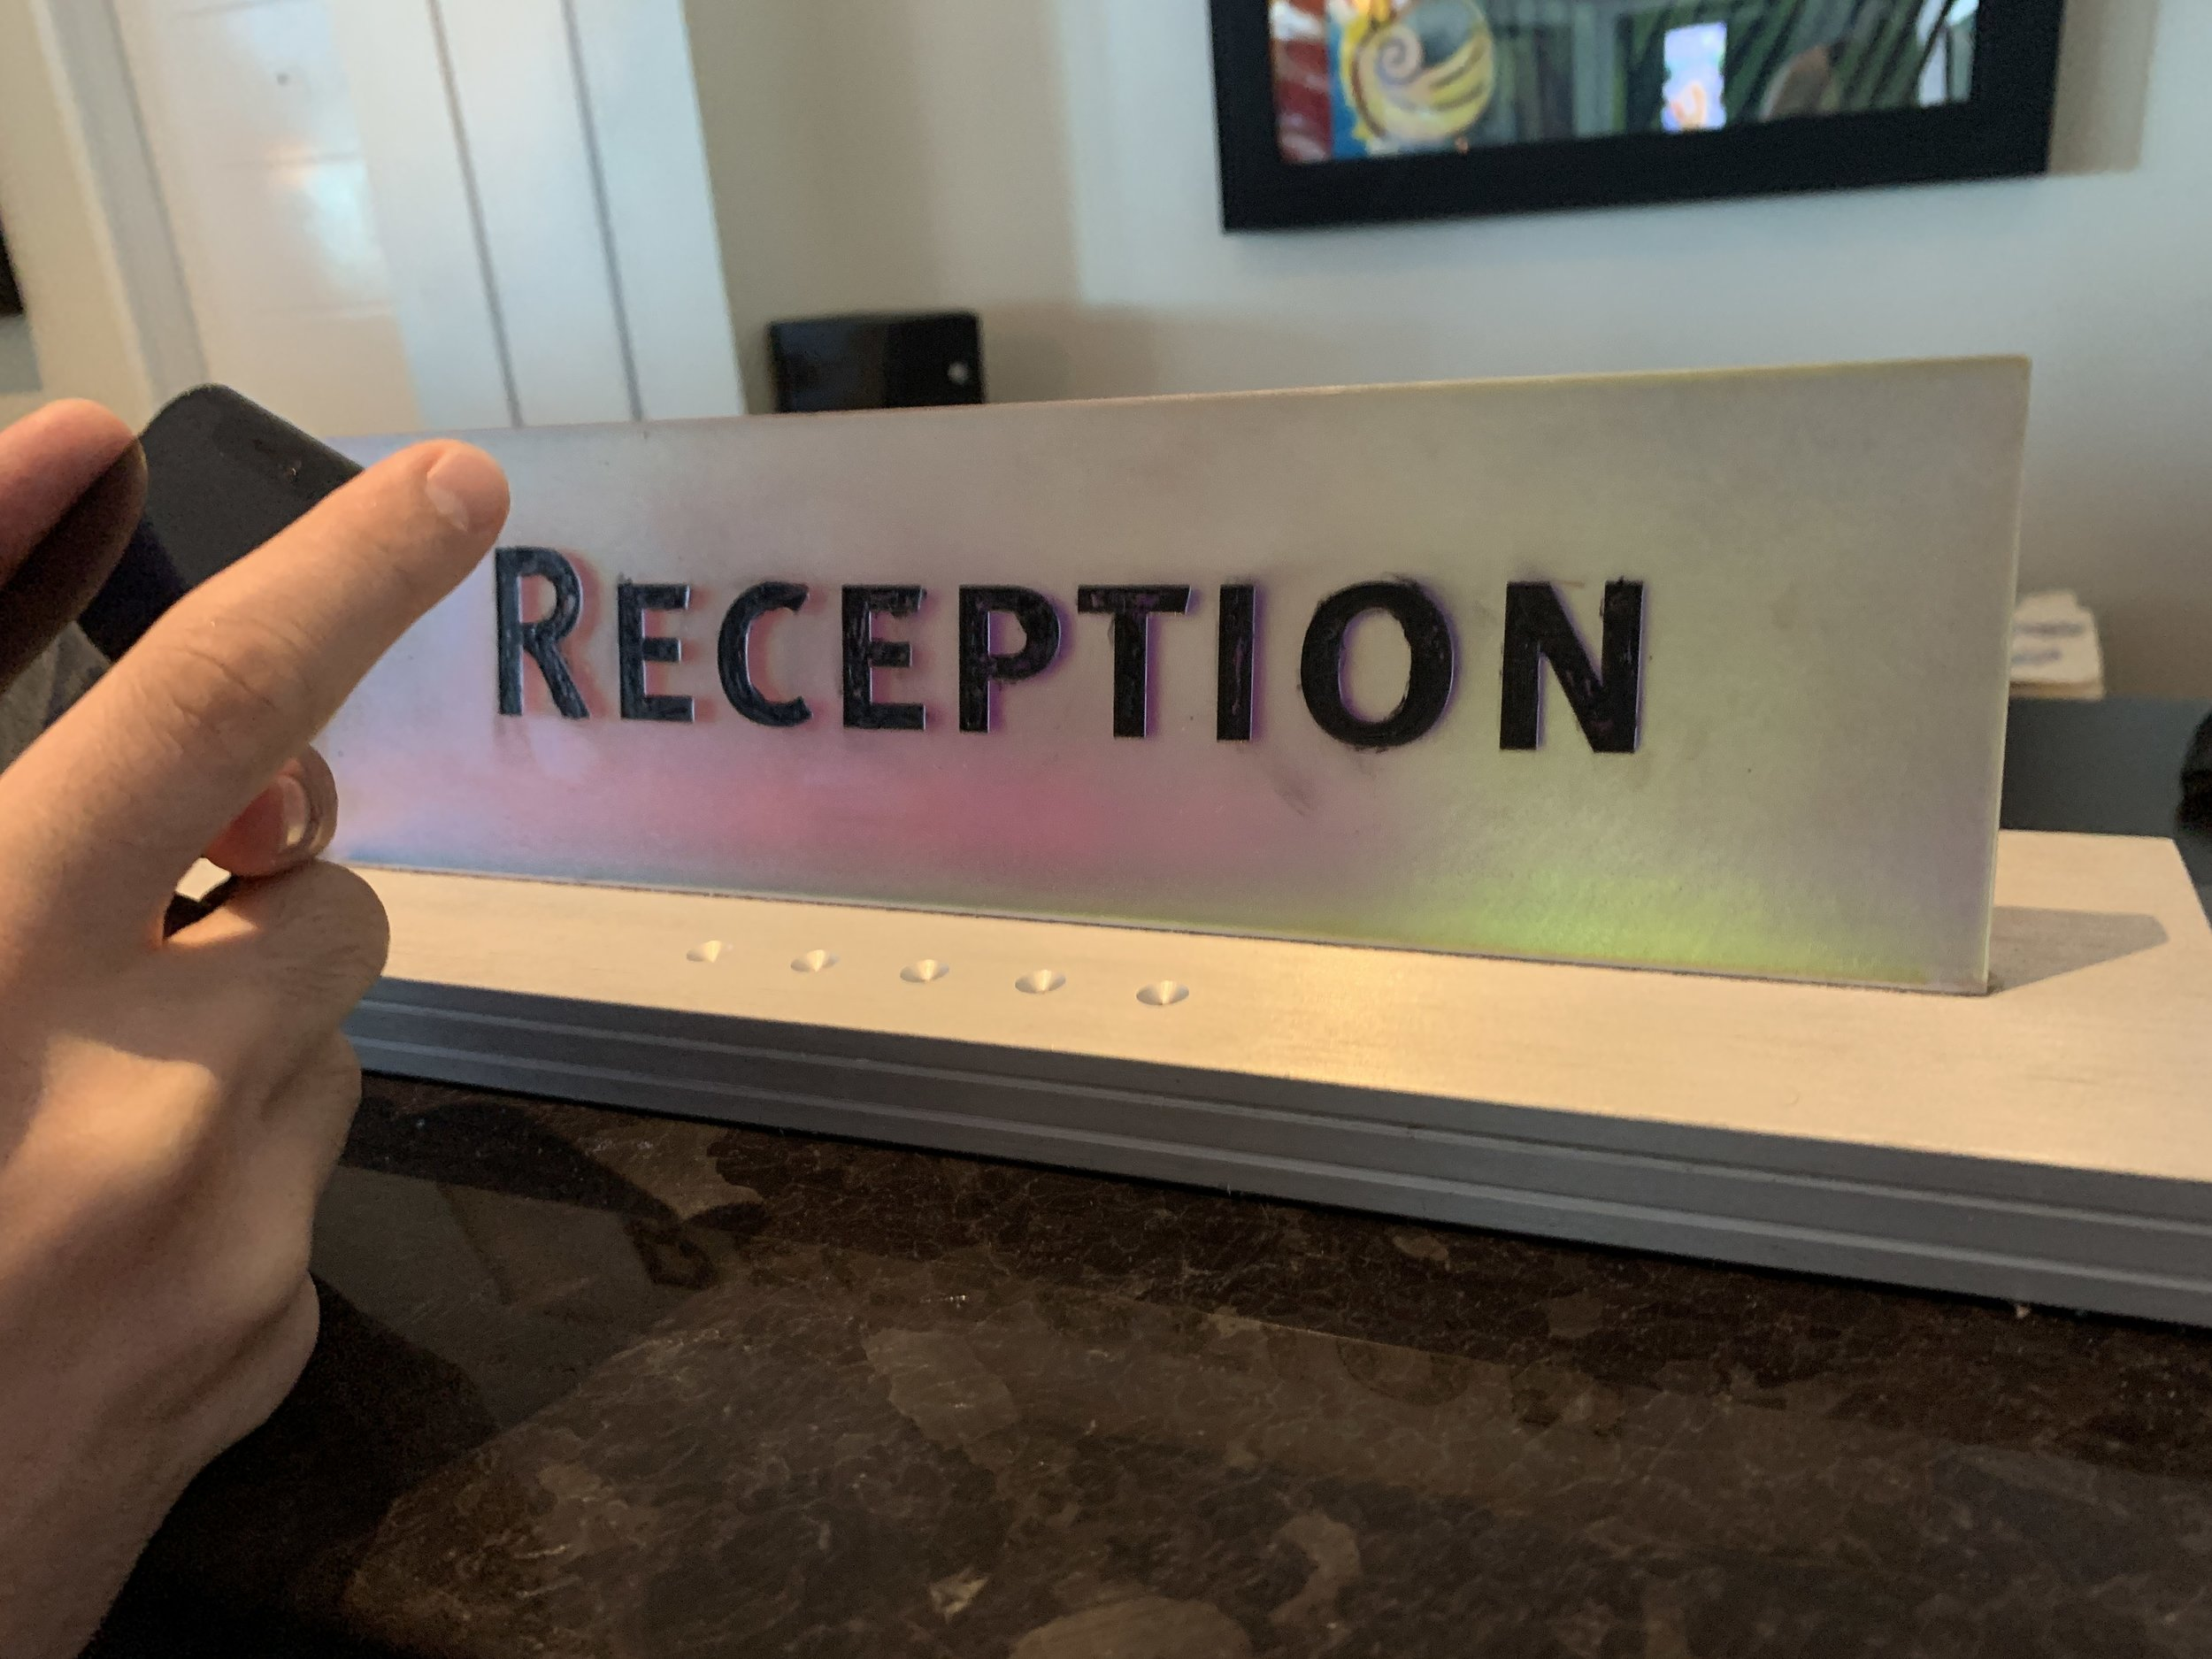 Close up of the Reception Desk sign. It looks like it was colored in with a ball point pen